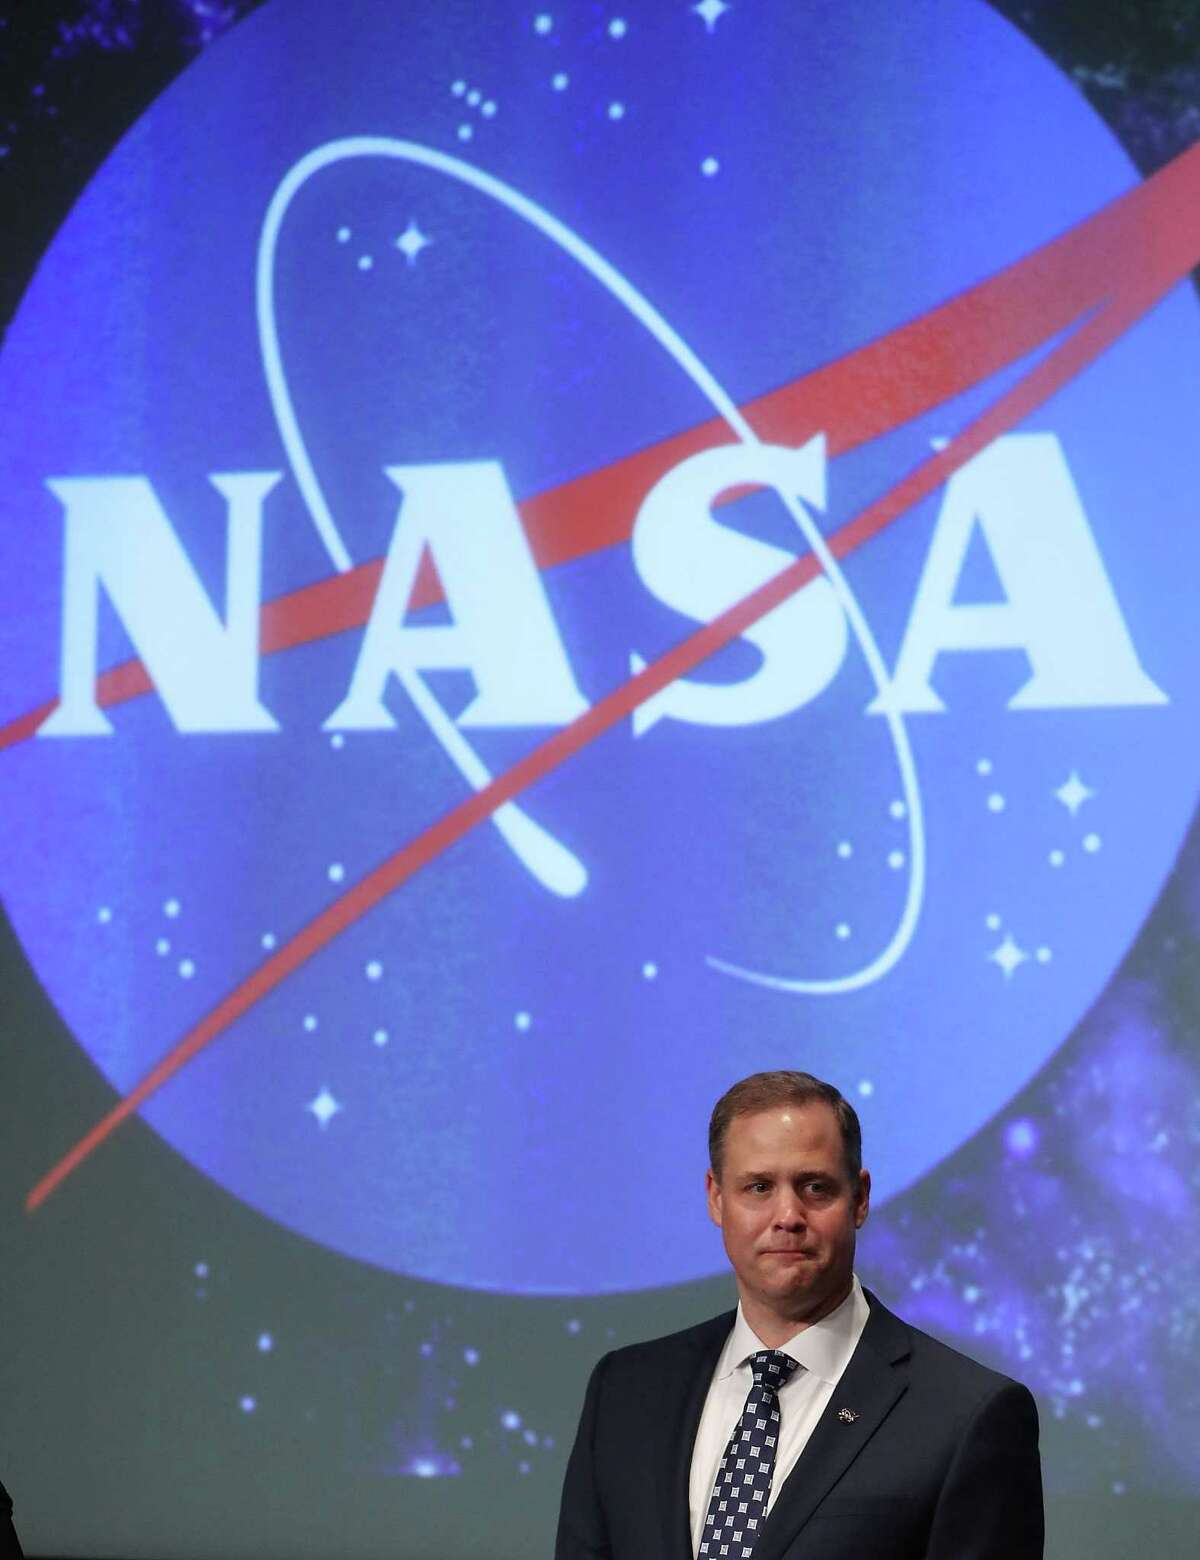 Jim Bridenstine speaks after he was sworn in as NASA's new administrator by Vice President Mike Pence, during a ceremonial swearing in, at NASA Headquarters on April 23, 2018 in Washington, DC.